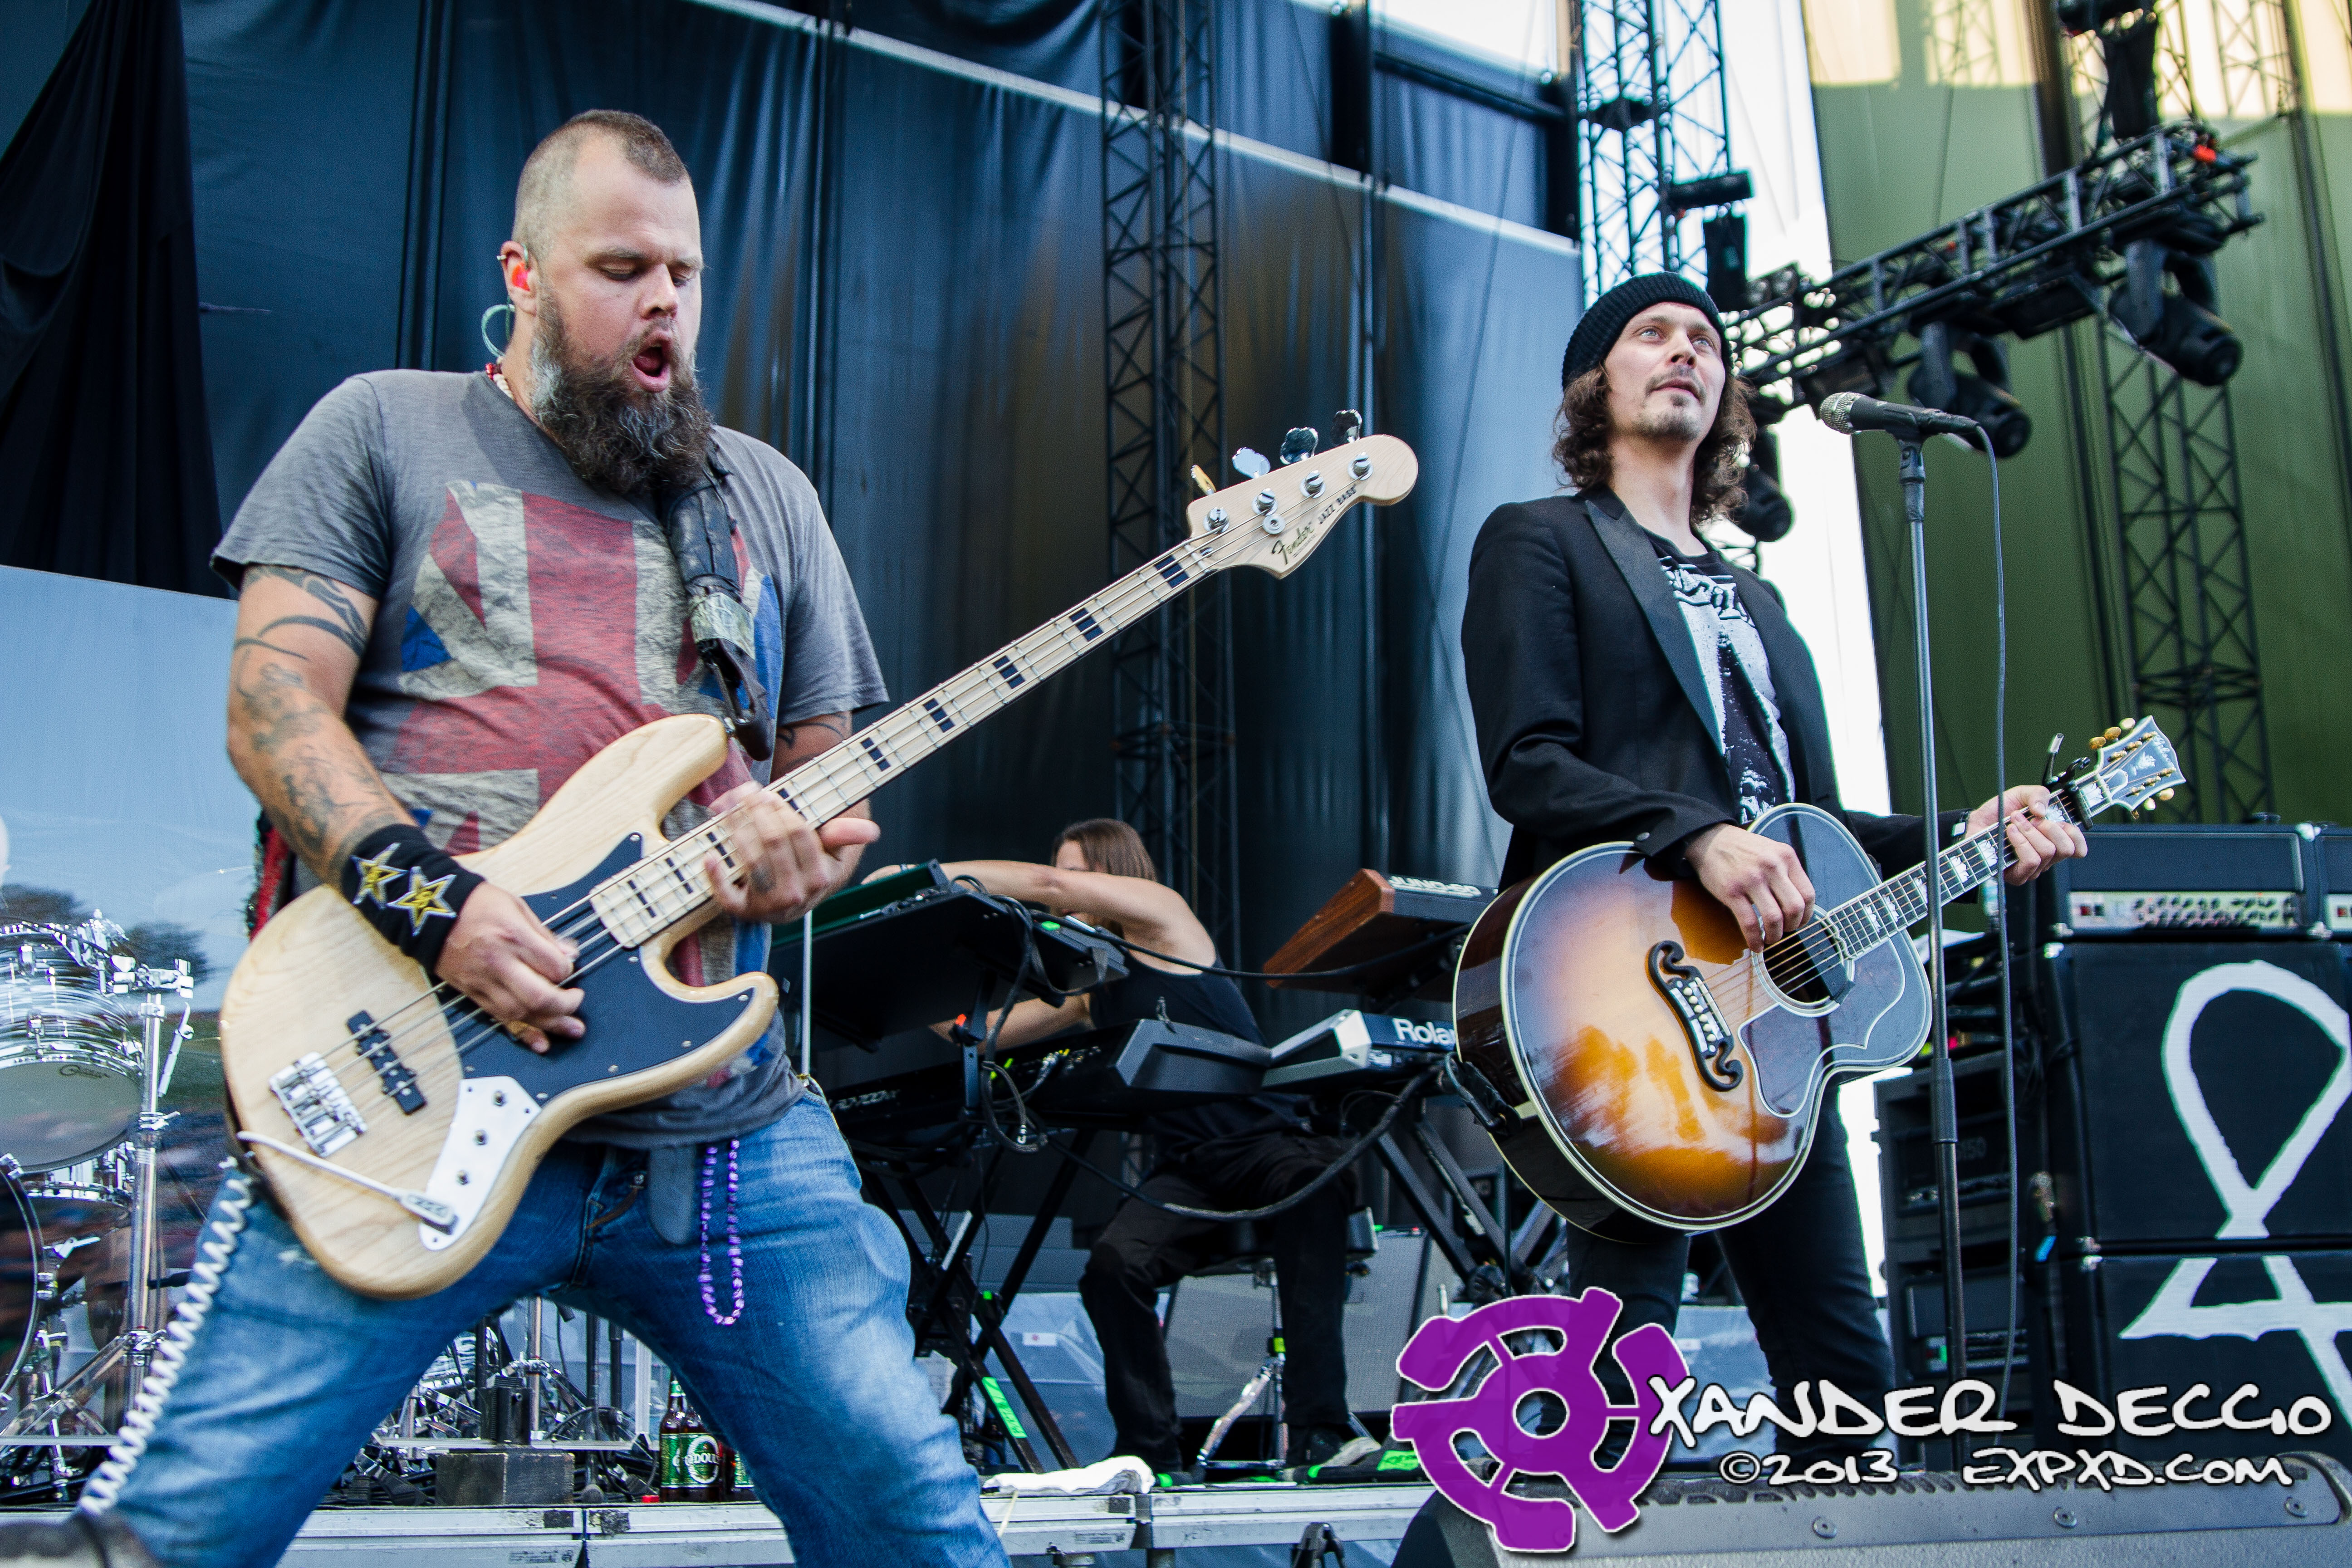 KISW Pain in the Grass 2013: HIM (Photo by Xander Deccio)